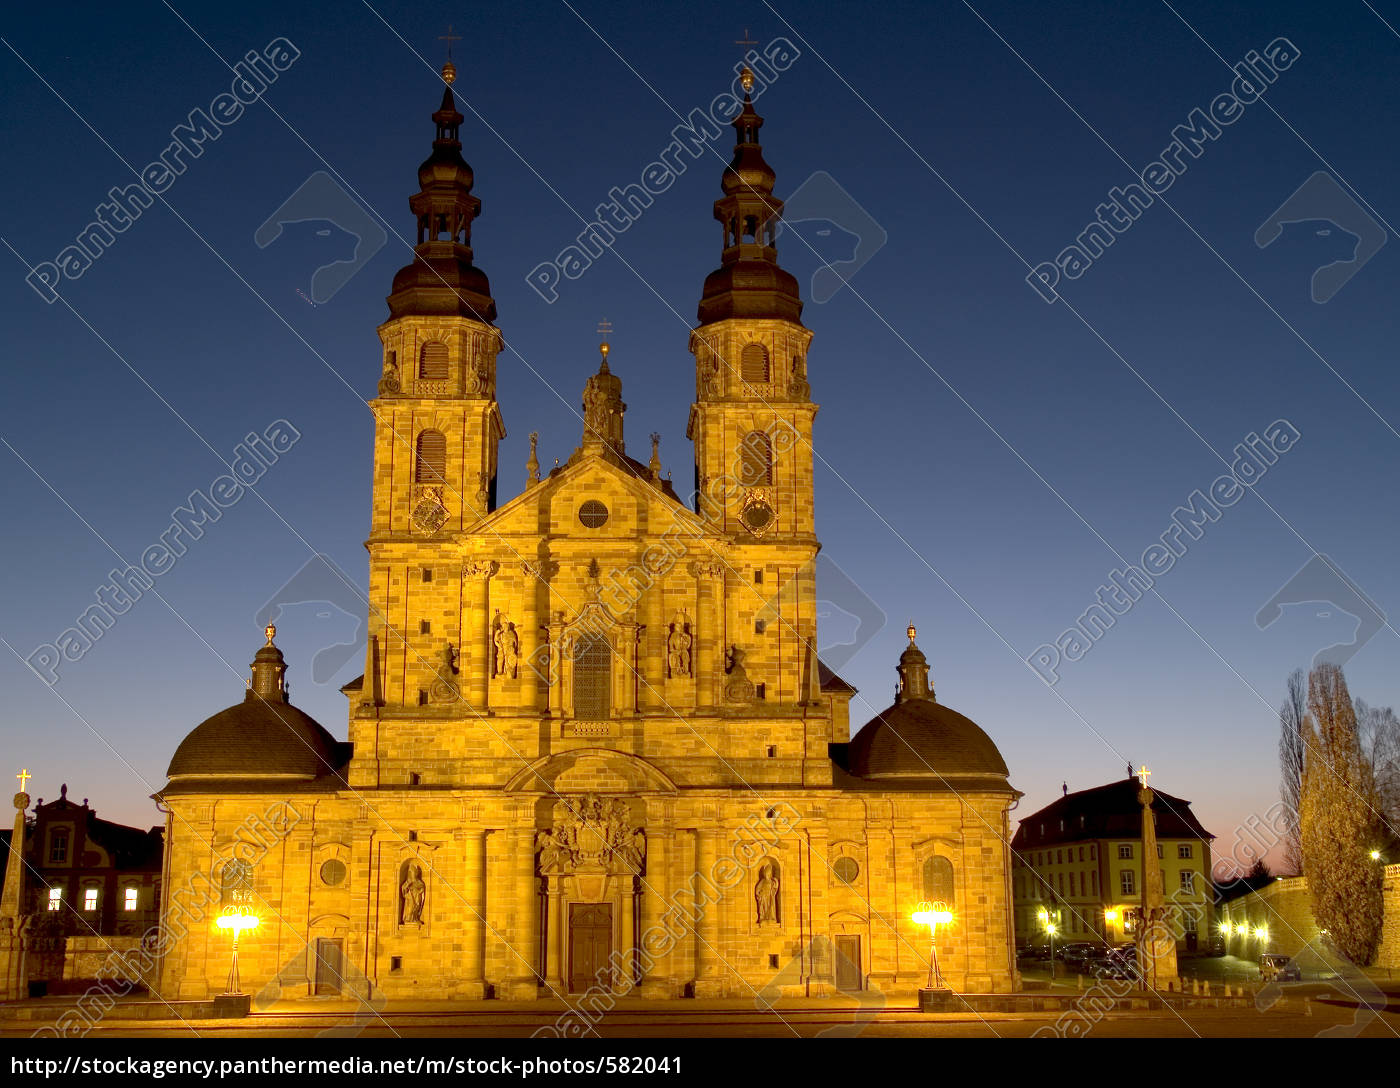 fulda, cathedral, view, 2 - 582041